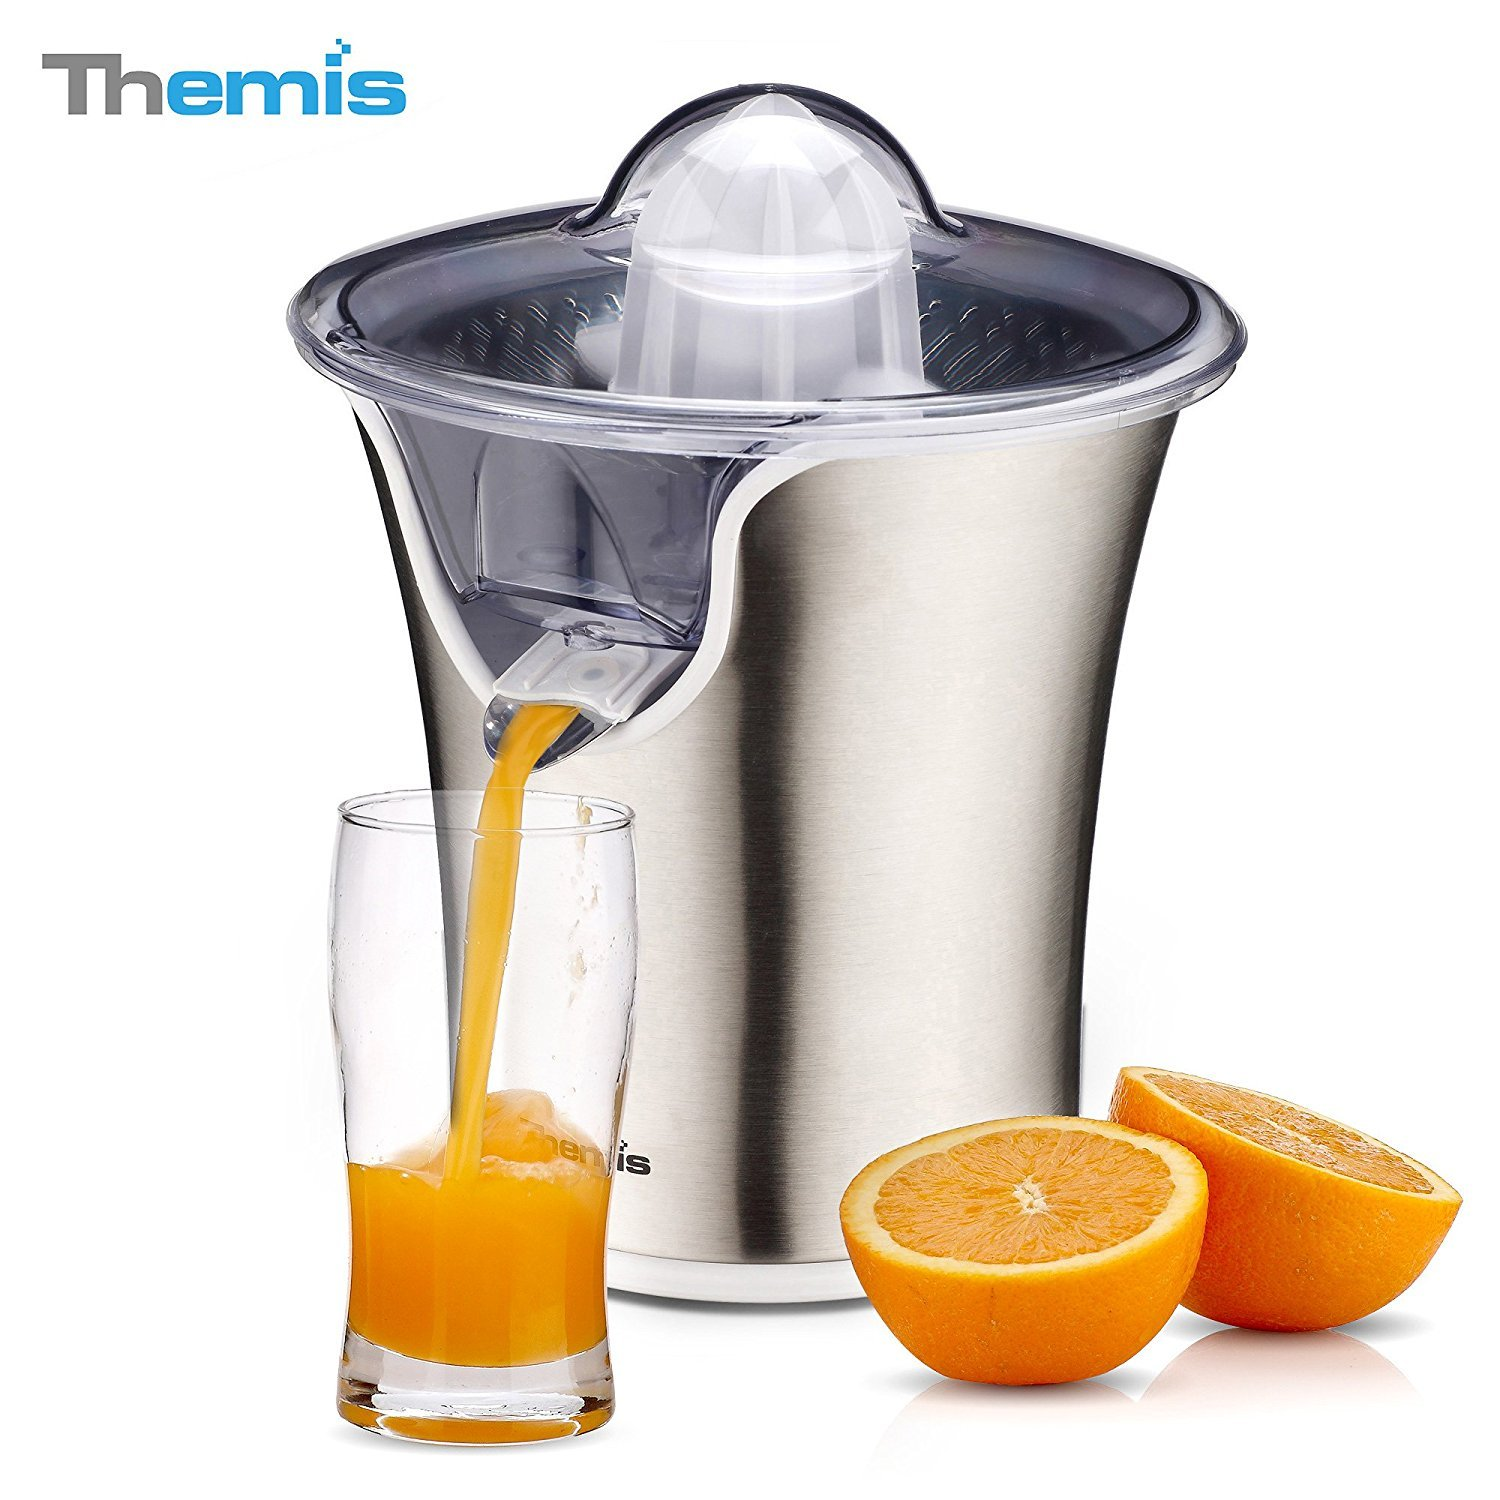 THEMIS CJ3372 85W Powerful StainleBest Citrus Juicers